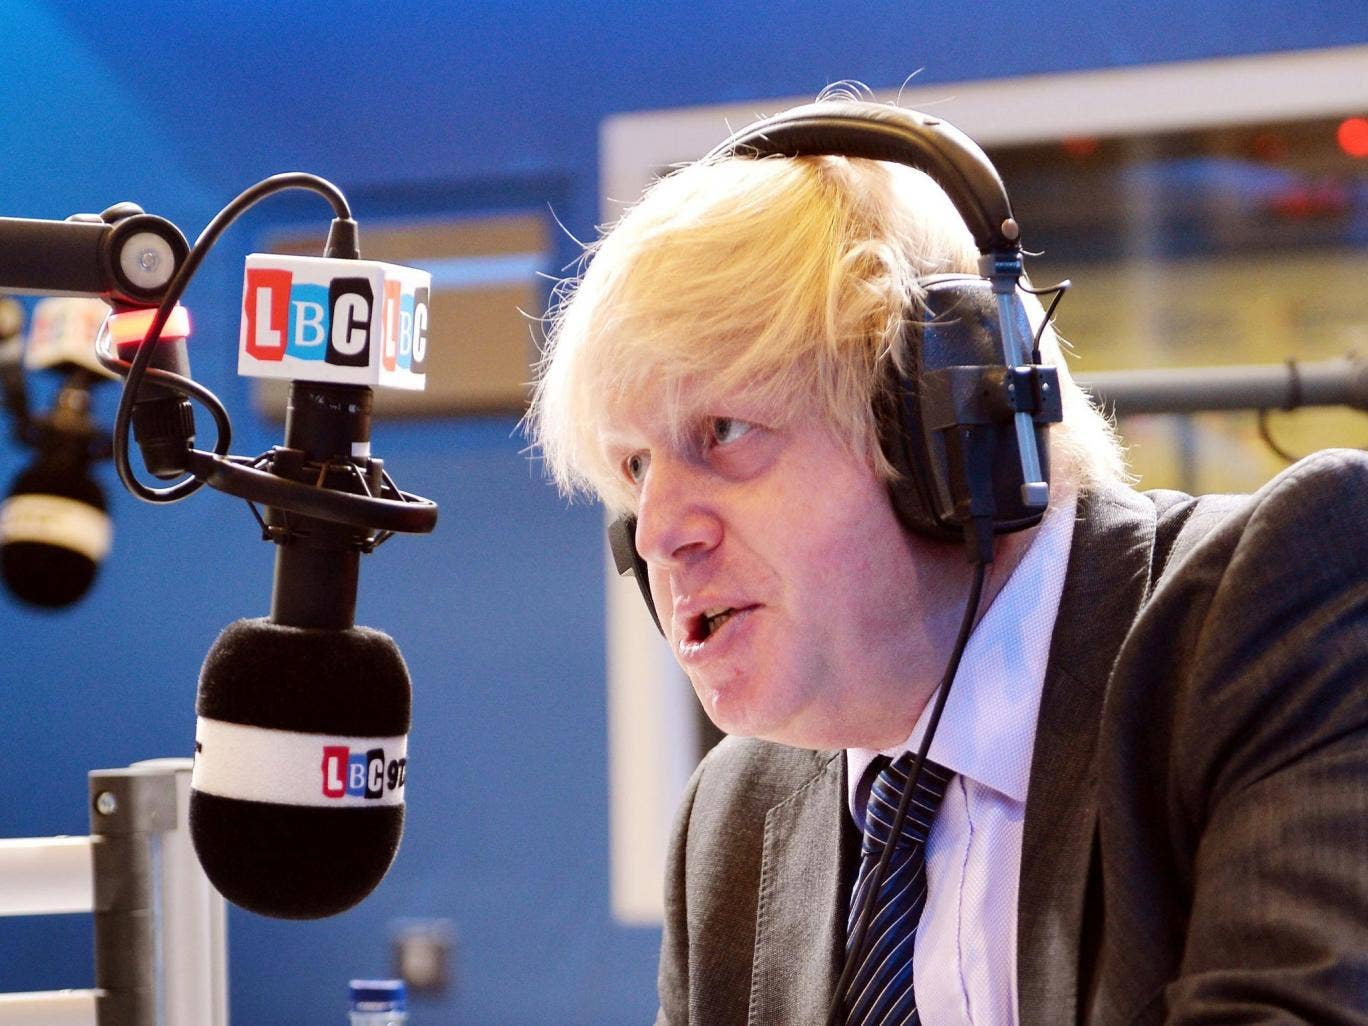 2 July 2013: The Mayor of London Boris Johnson responds during his appearance on the LBC 97.3 radio phone-in show, hosted by Nick Ferrari in the LBC studios in London. Boris Johnson could still reverse his decision not to seek a third term as London mayor